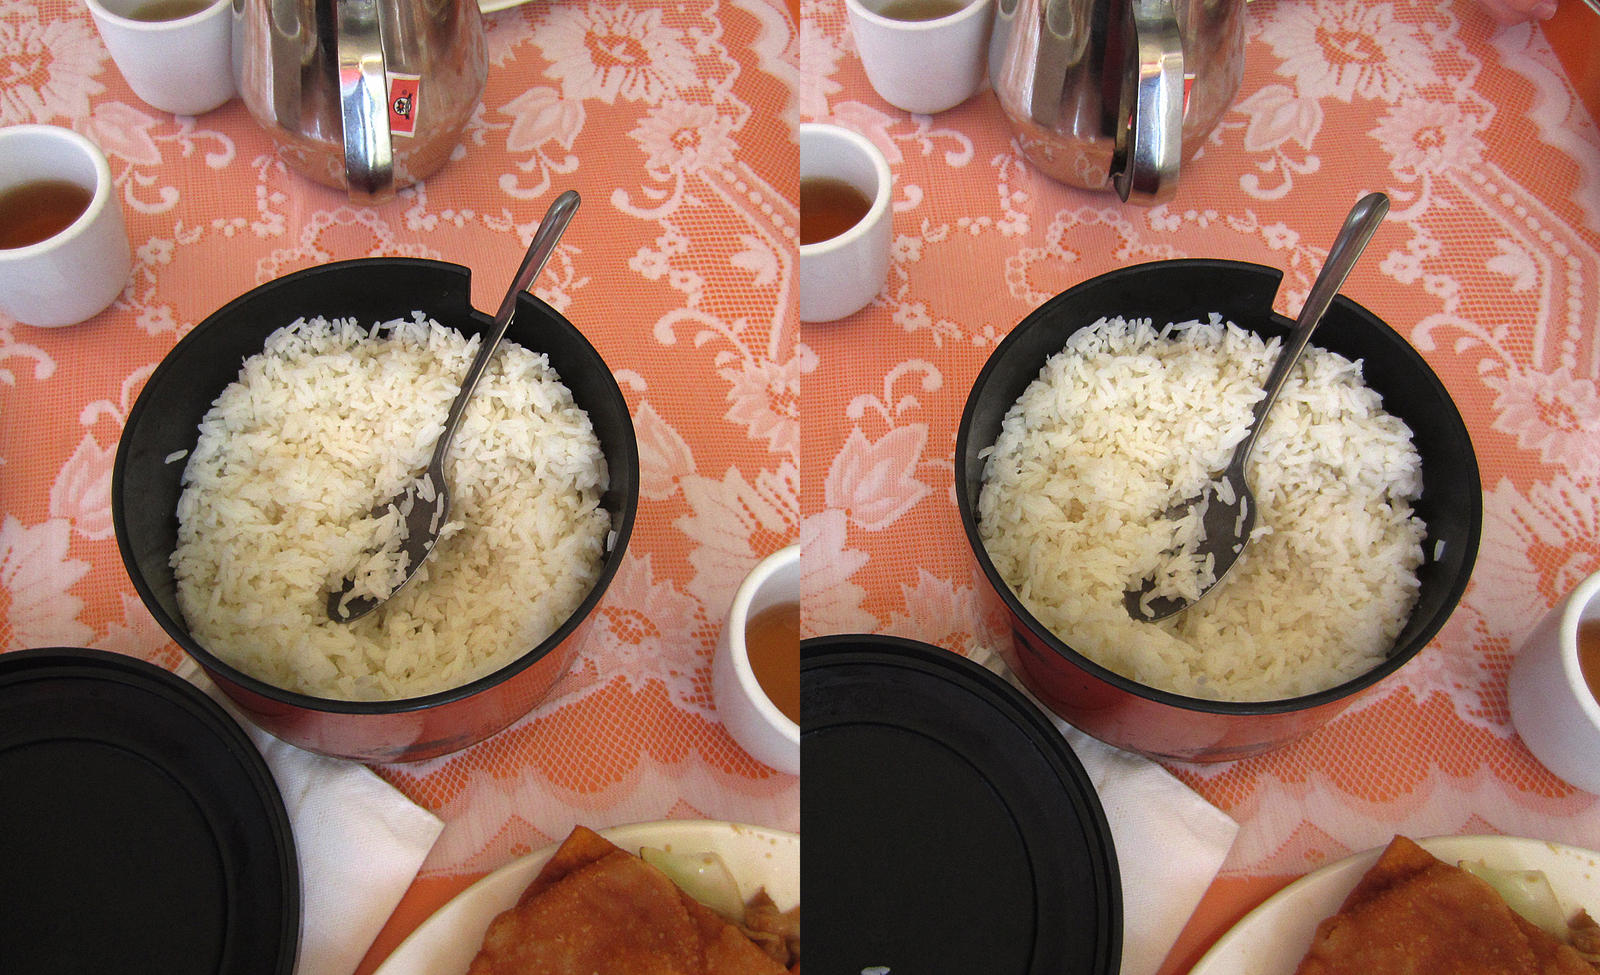 Stereograph - Steamed Rice by alanbecker